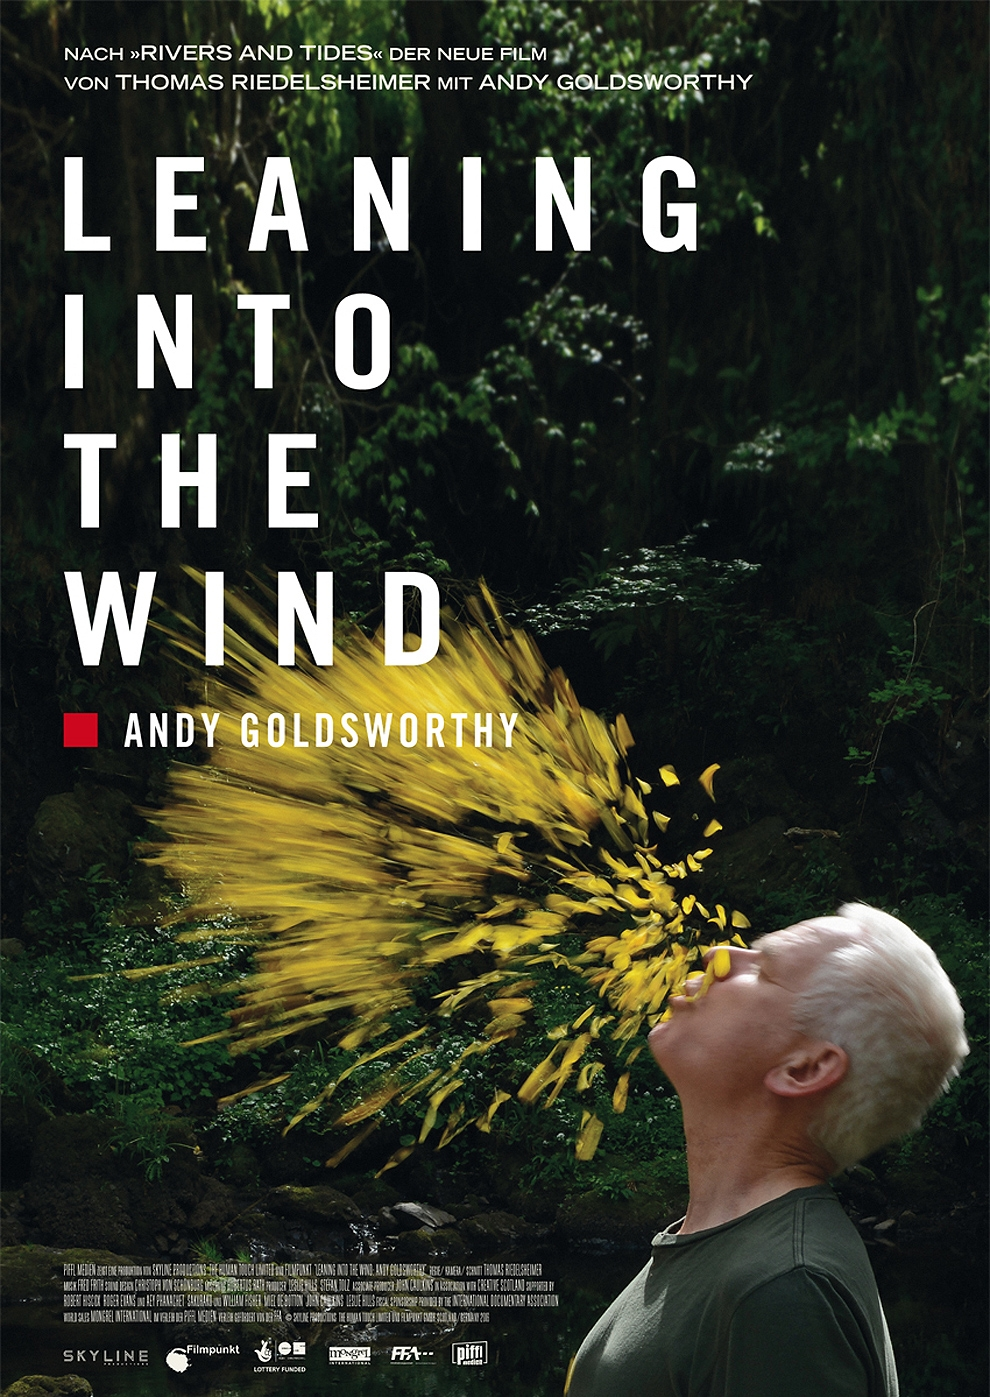 Leaning into the Wind - Andy Goldsworthy (Poster)